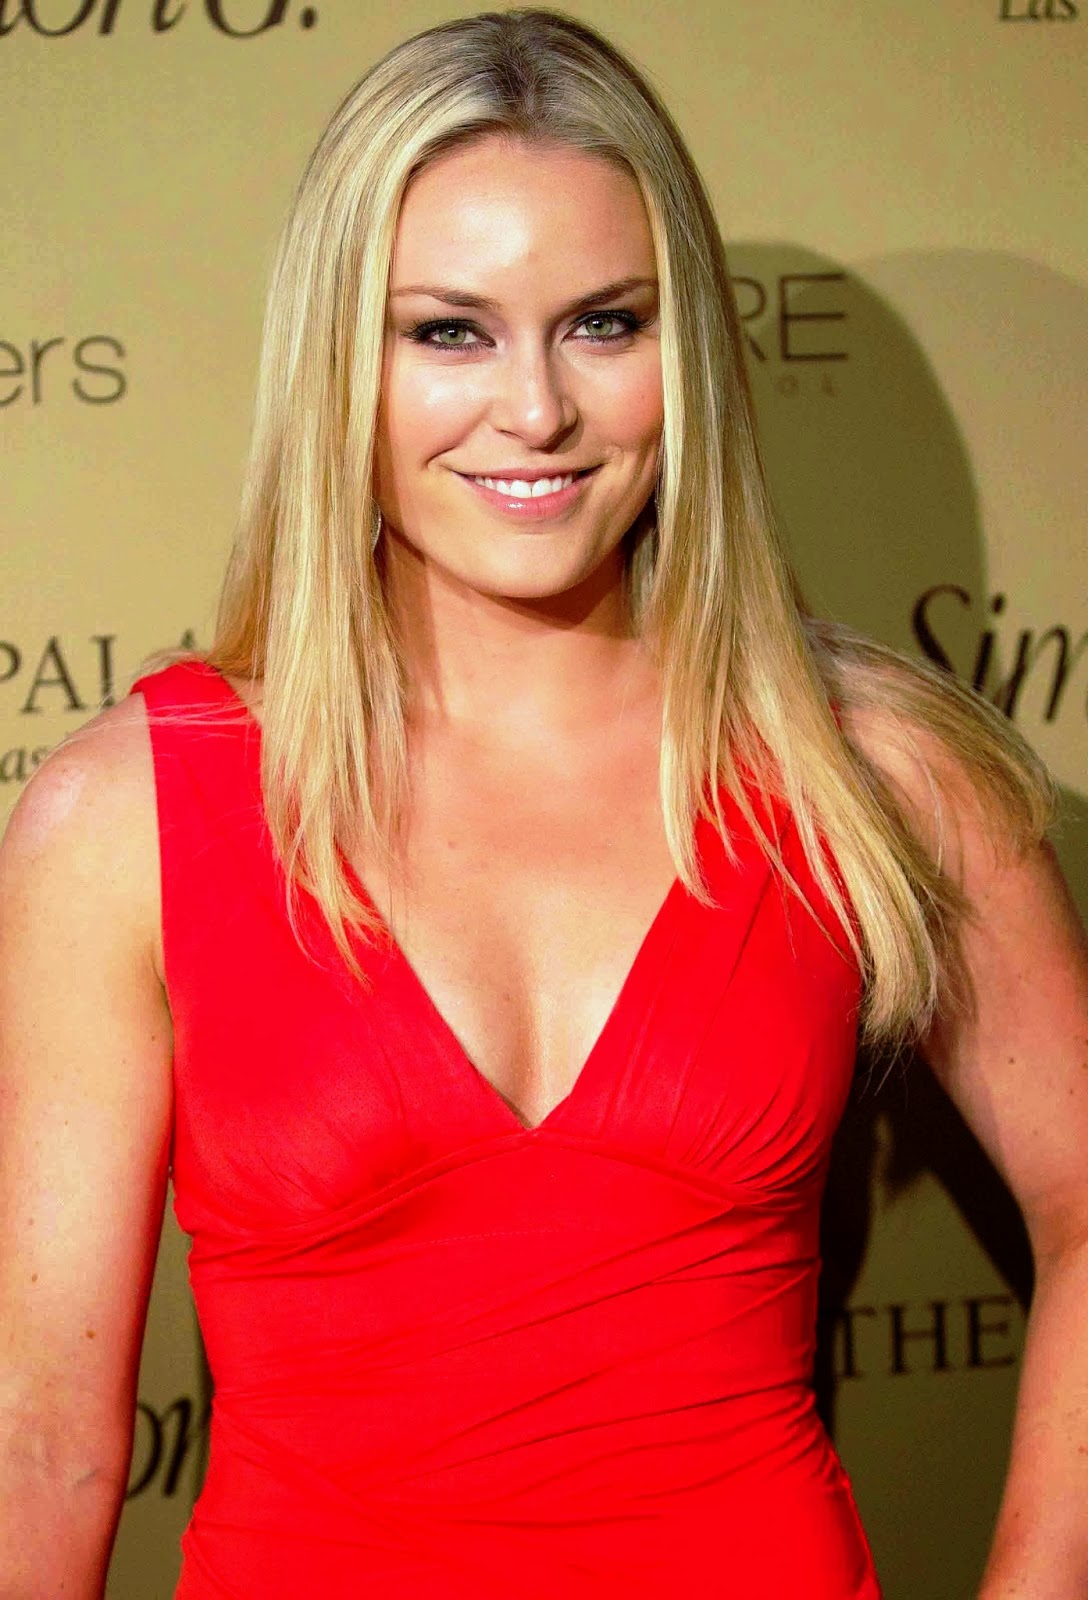 Tigers Woods Reveals Sexual Past — Lindsey Vonn Knows ...